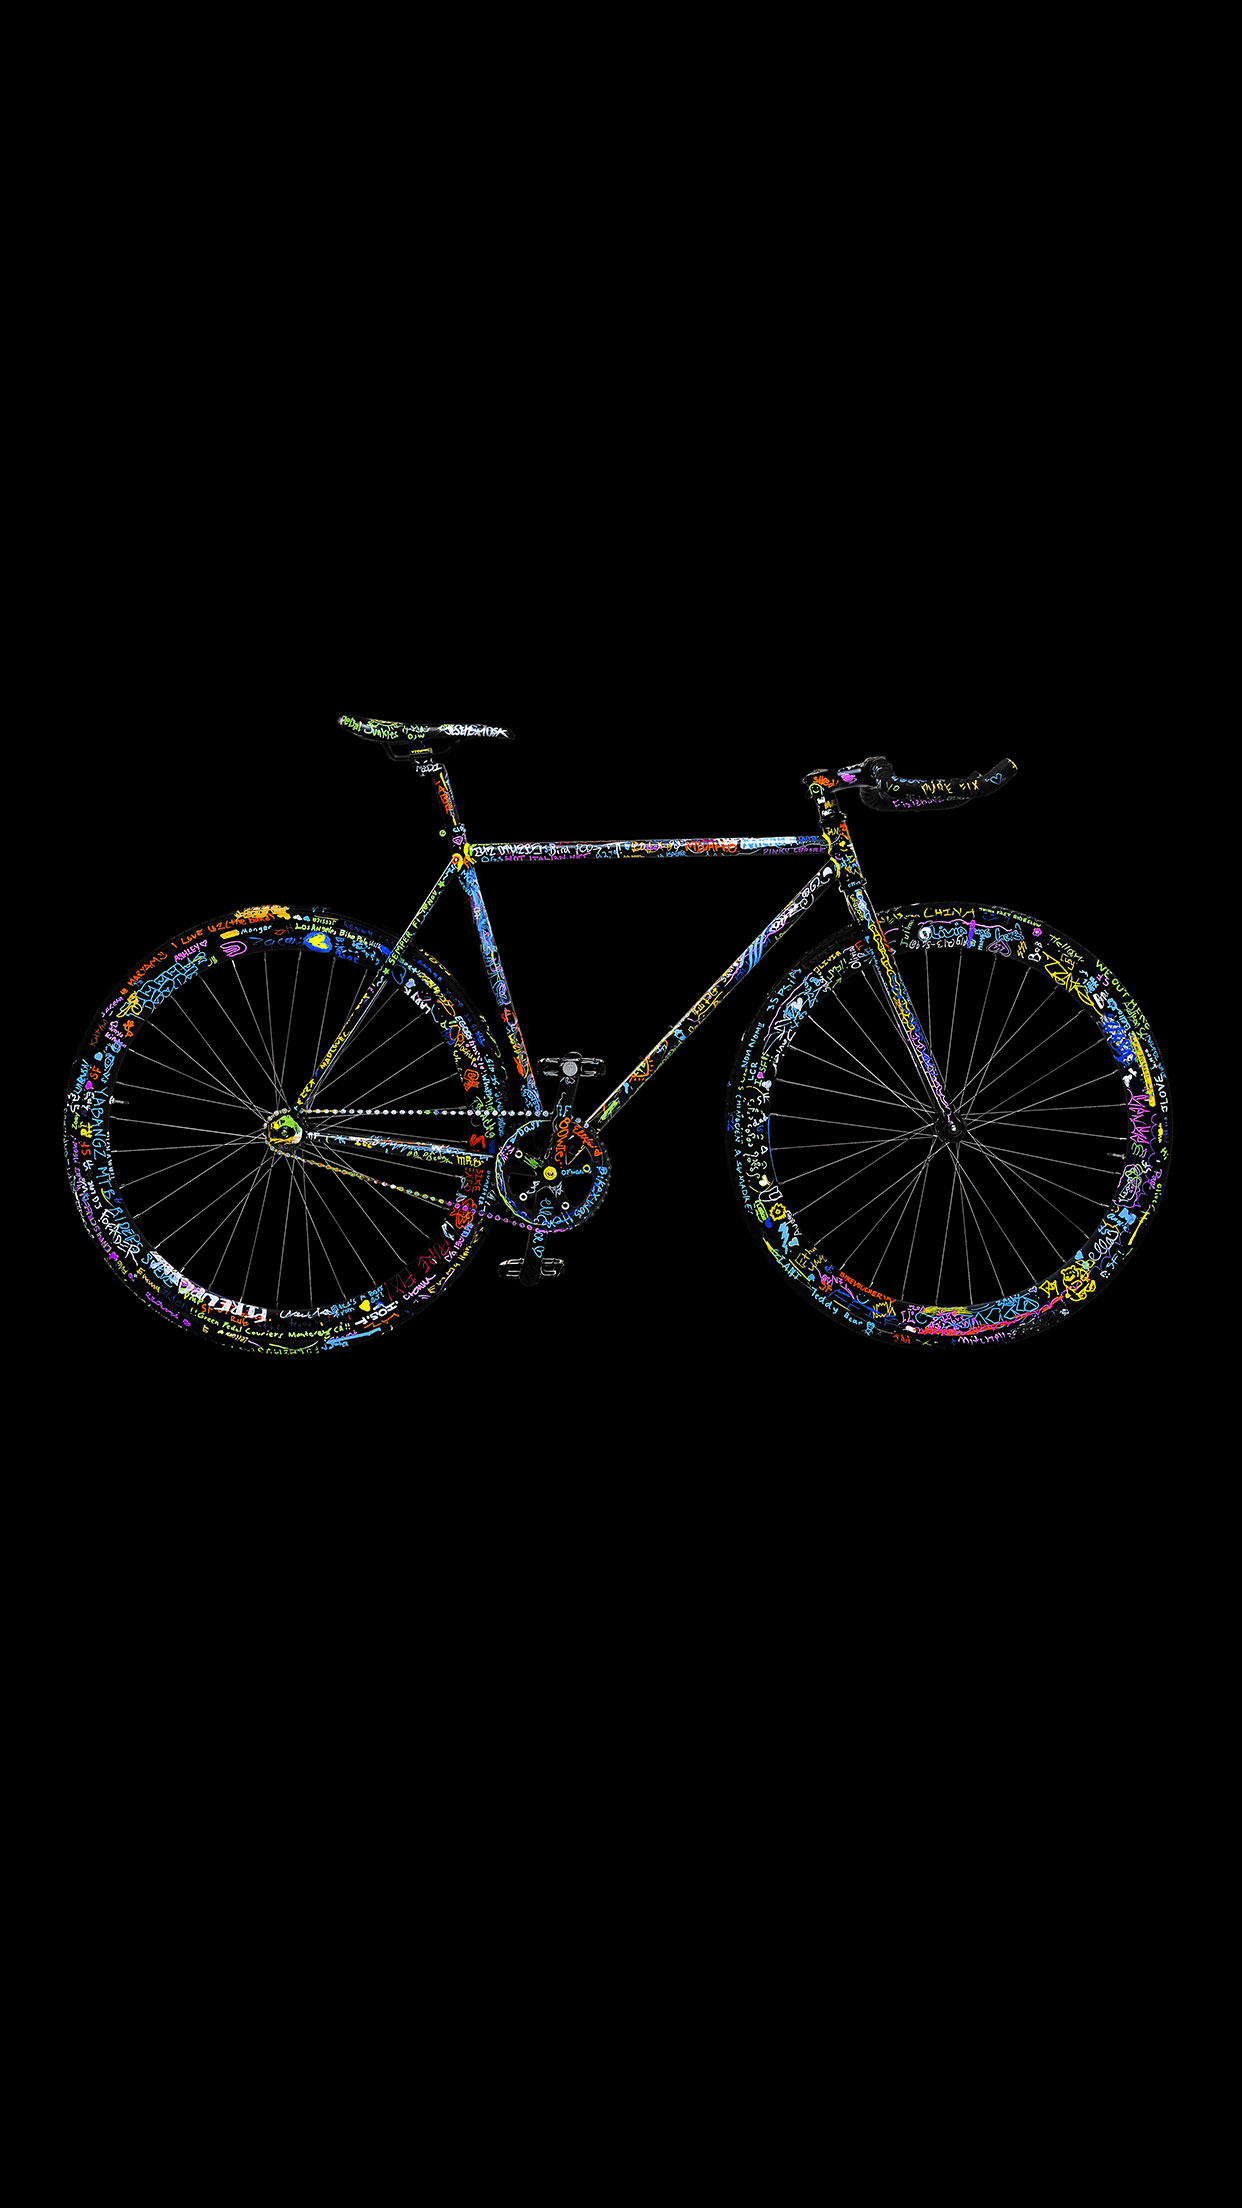 Fixed Gear Wallpaper Iphone Les 3 Wallpapers Iphone Du Jour 18 01 2015 Appsystem